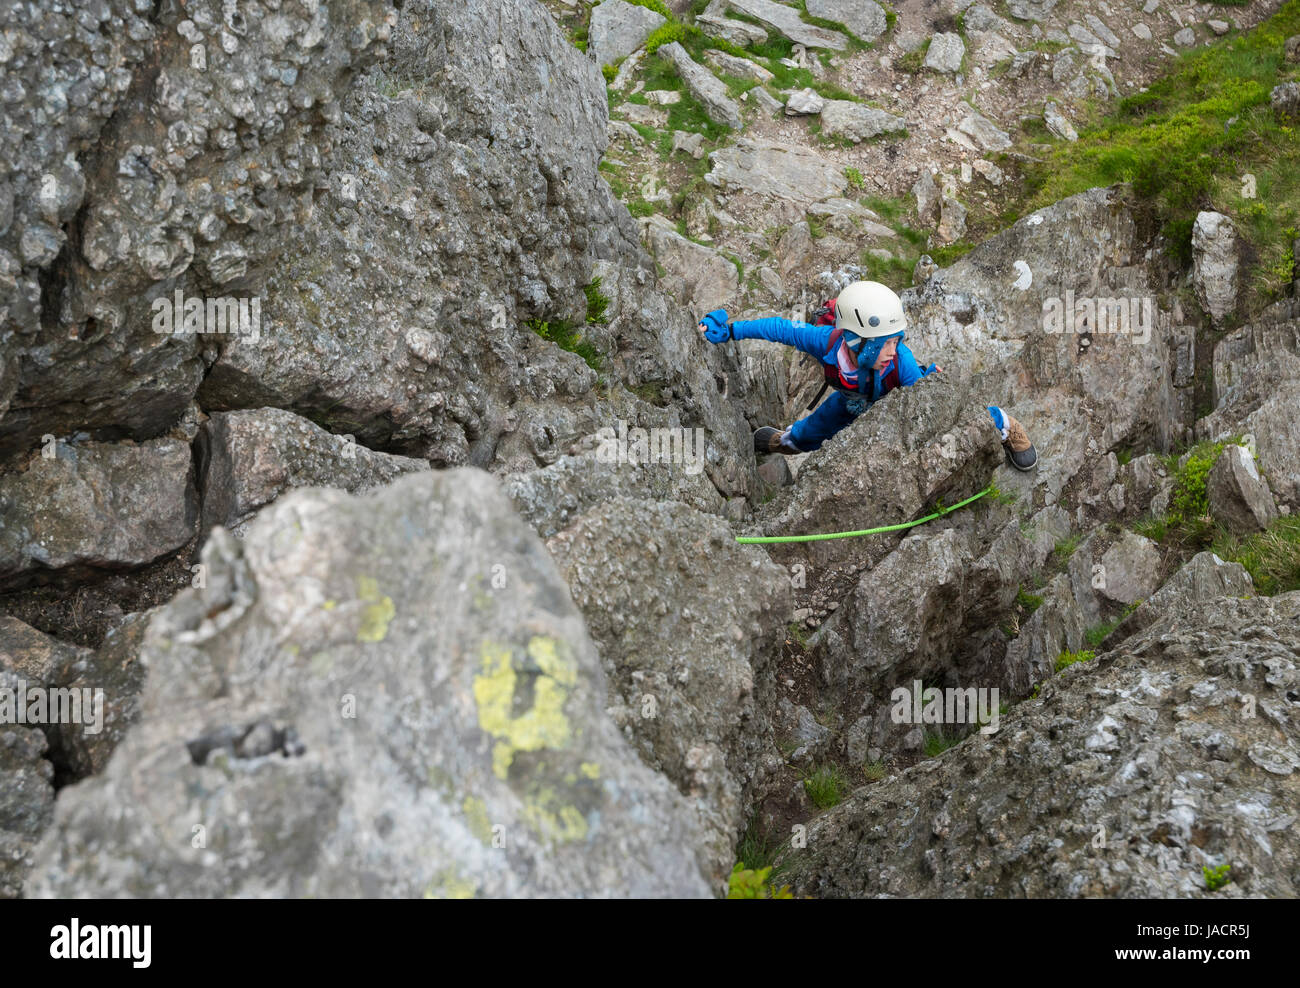 A young boy srambling on the north ridge of Tryfan, Snowdonia - Stock Image